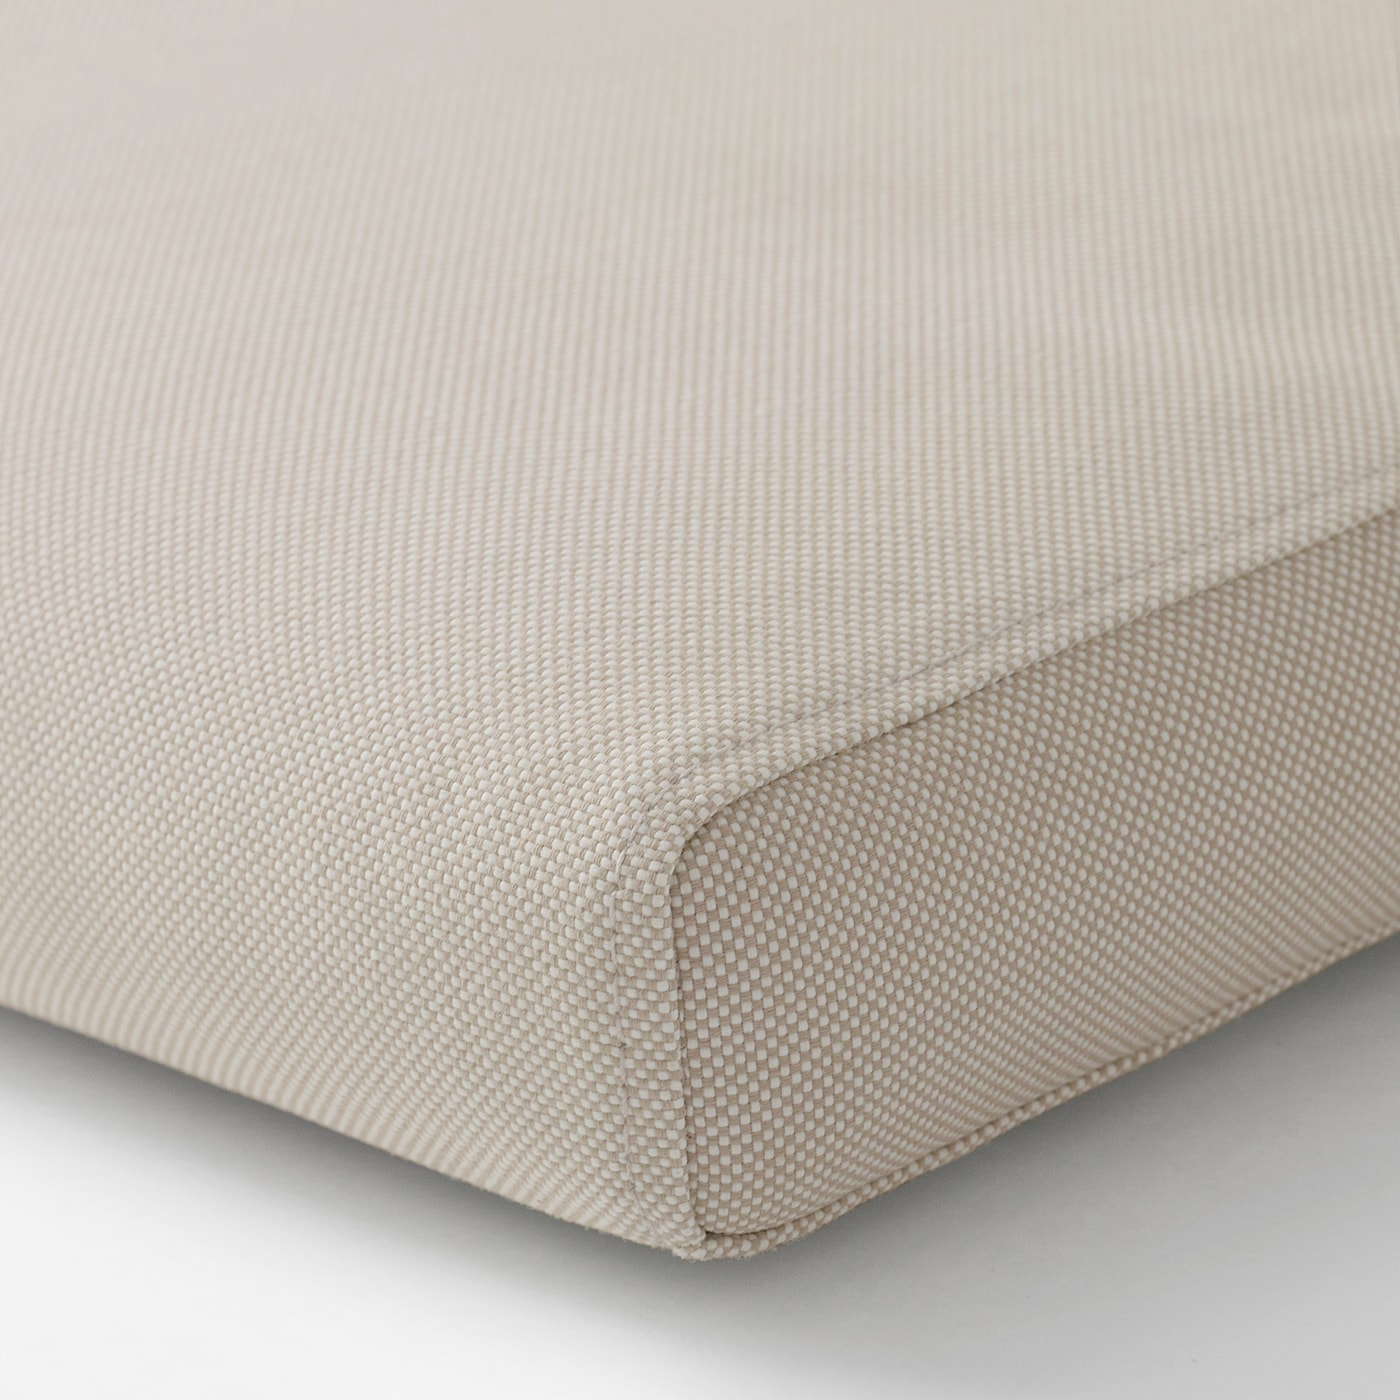 Picture of: Froson Duvholmen Chair Cushion Outdoor Beige Buy Here Ikea